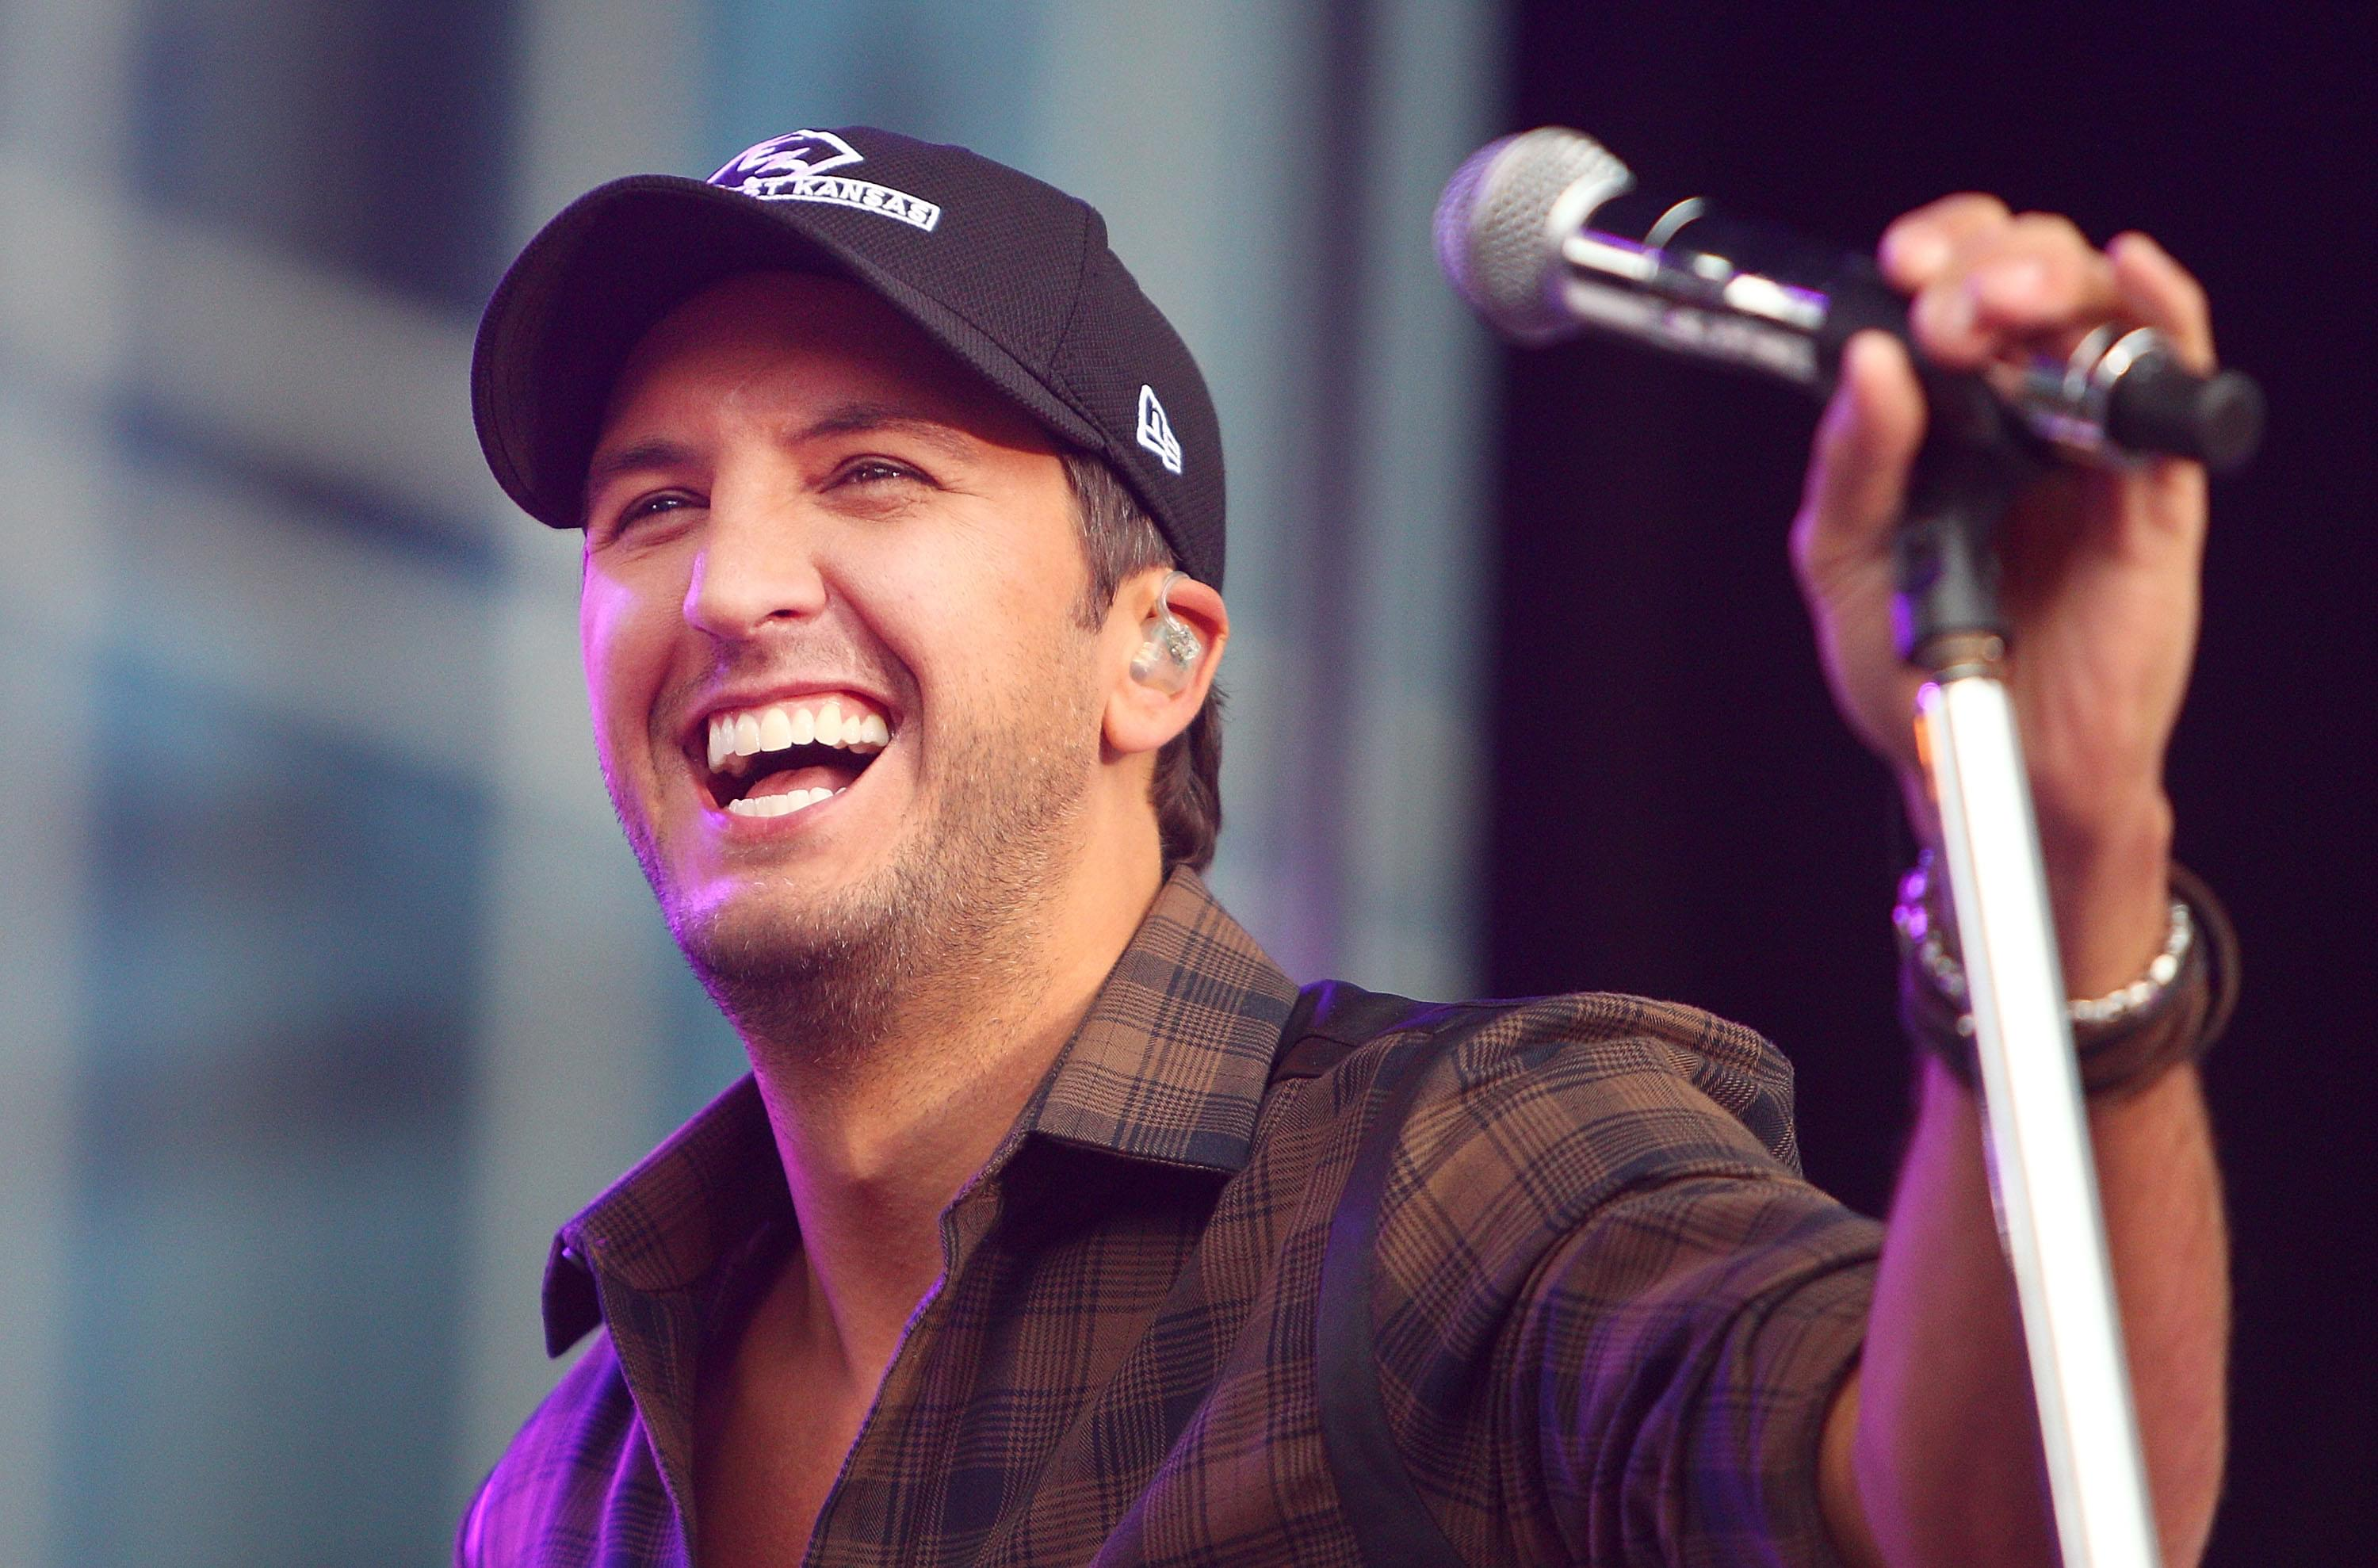 Video Shows Luke Bryan Getting Hit In The Junk With A Full Beer [WATCH]